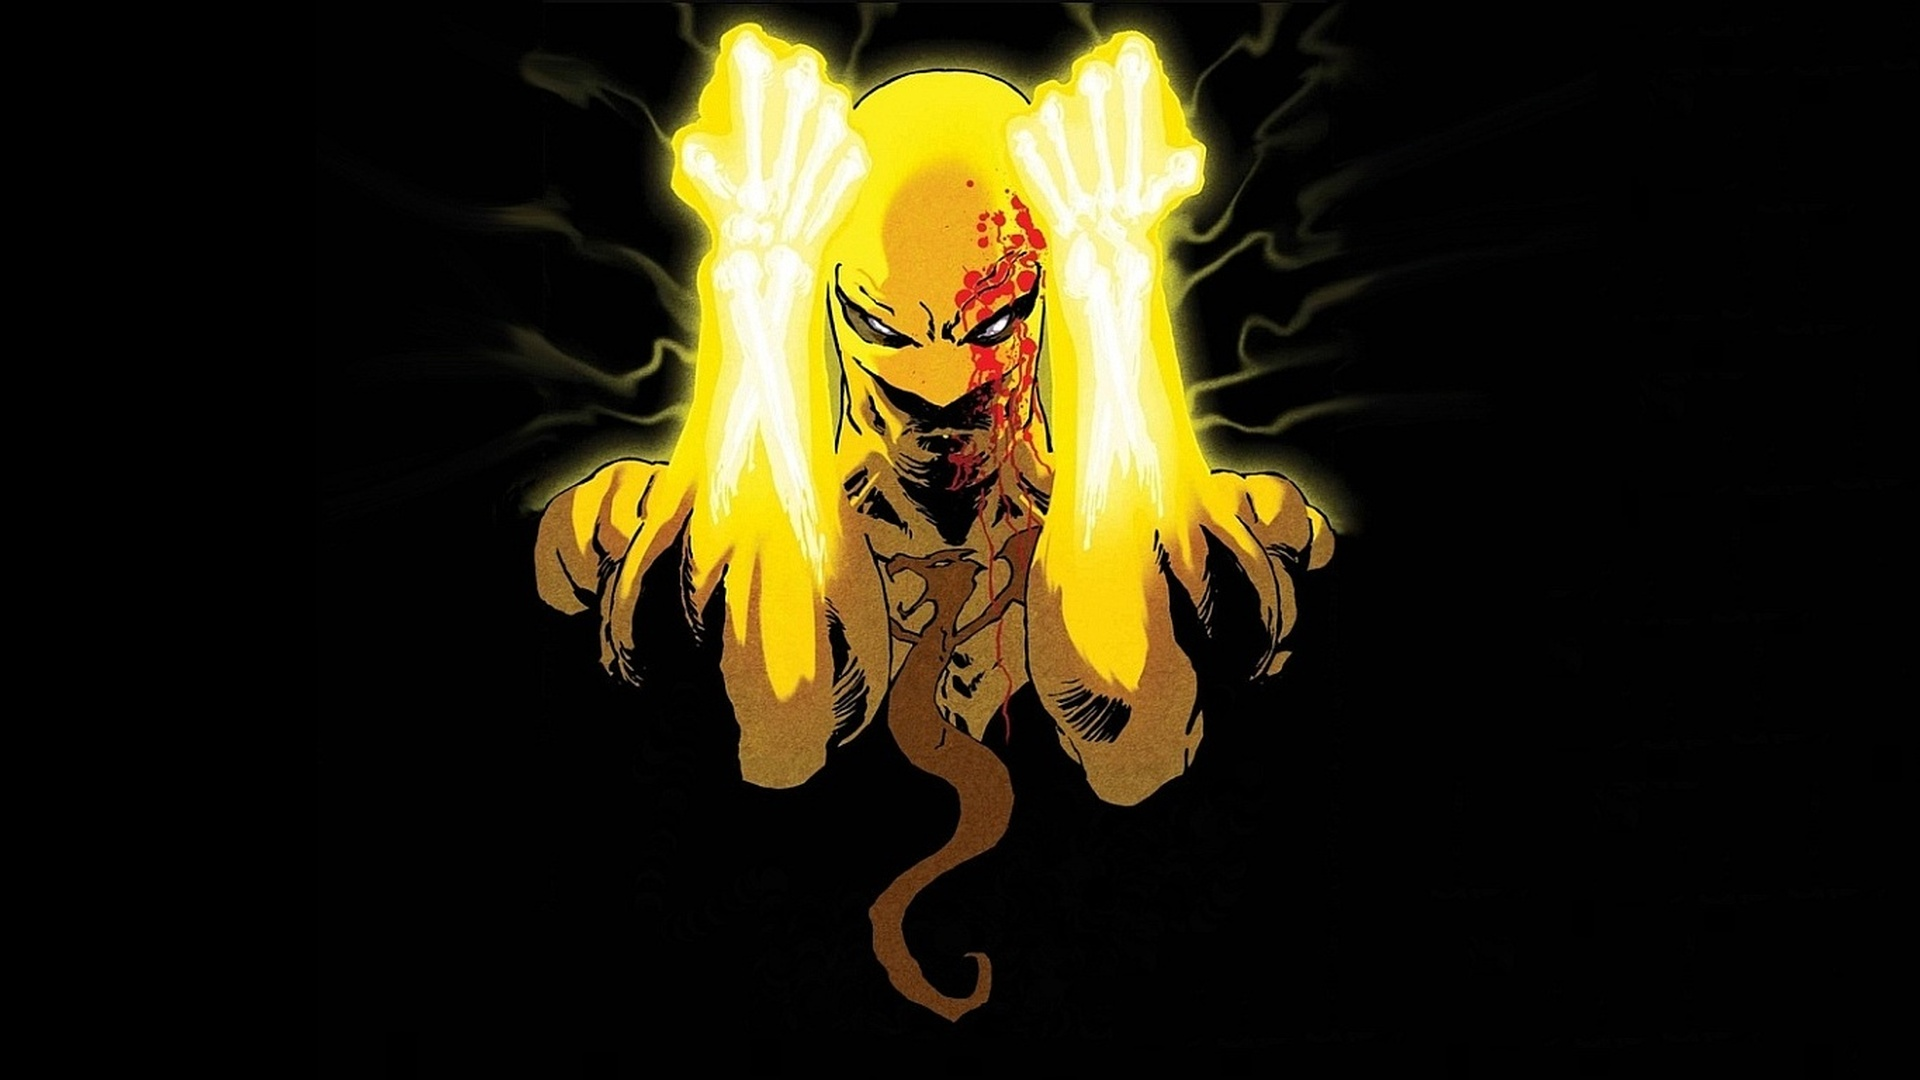 Comics-Iron-Fist-The-Living-Weapon-The-Living-Weapon-Iron-Fist-wallpaper-wp3803935